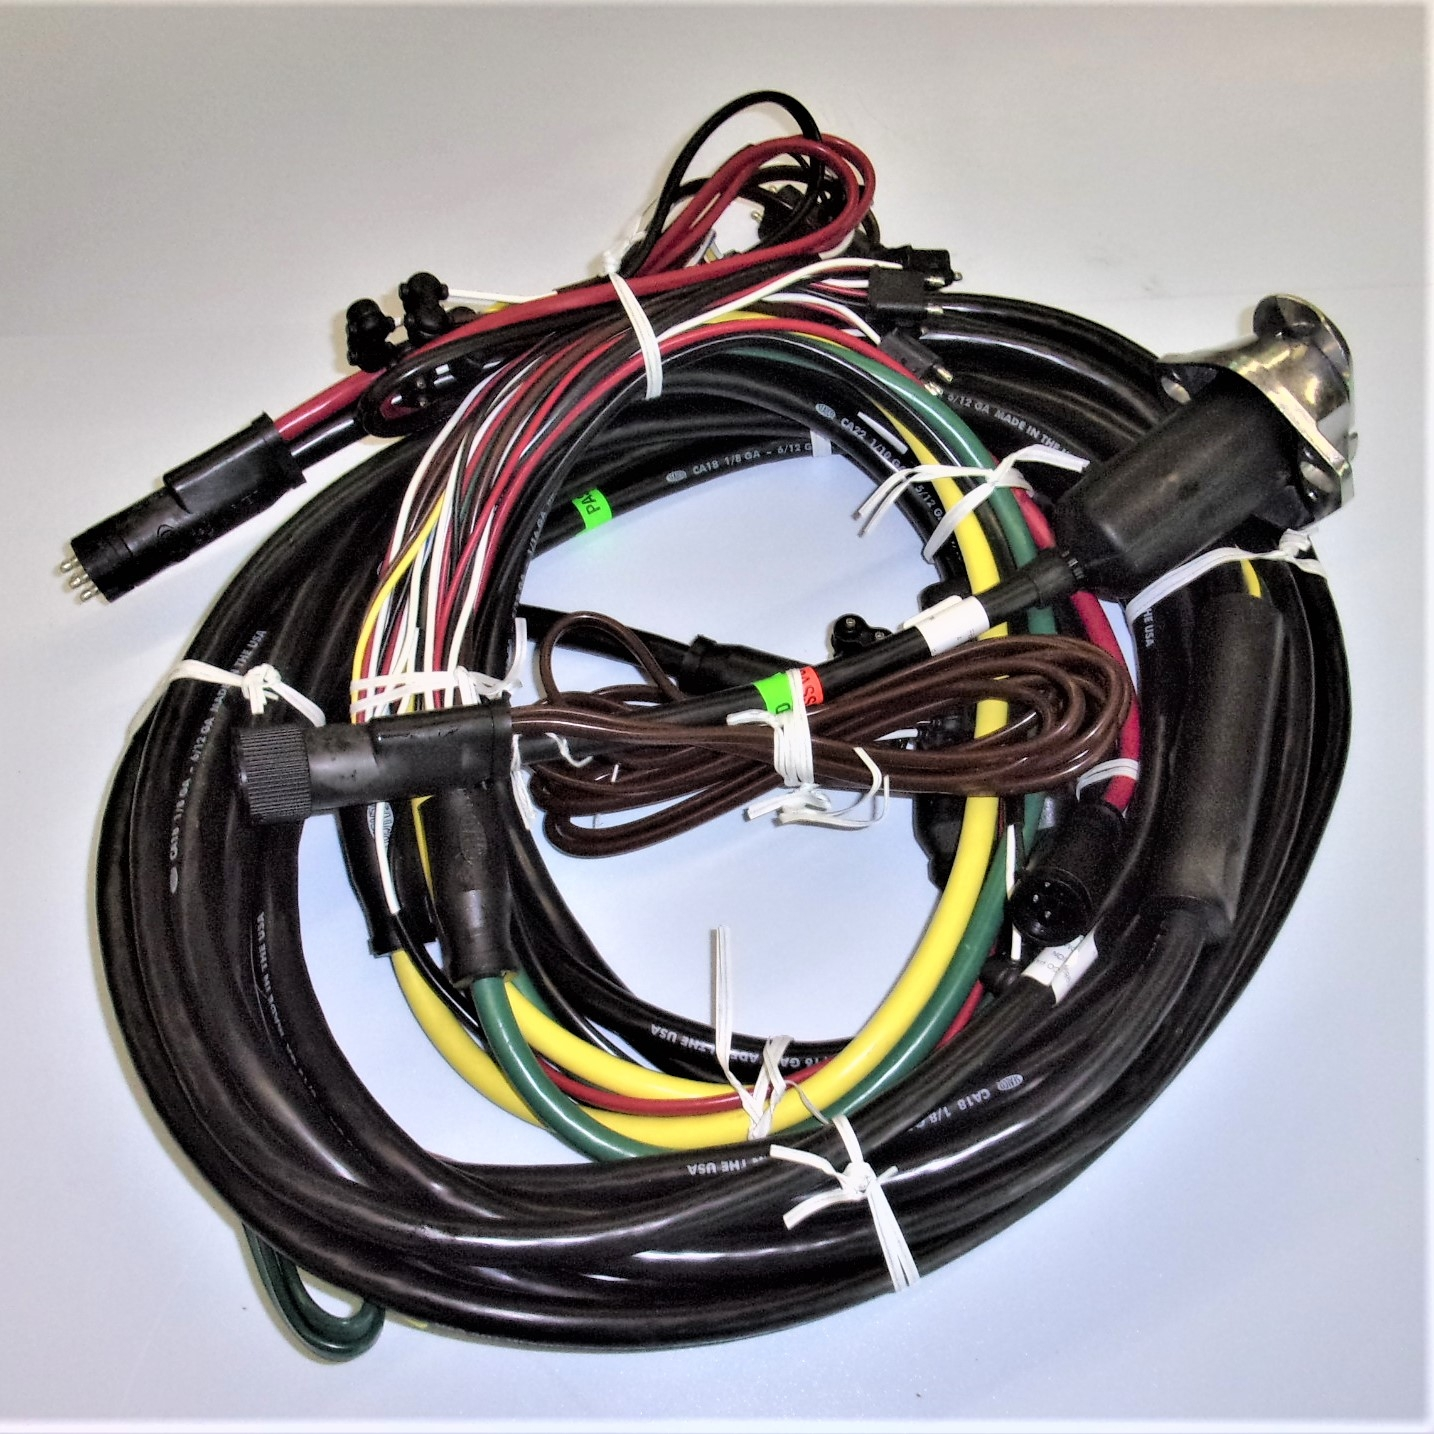 hight resolution of universal 48 trailer wiring harness kit iloca services inc lowboy trailer wiring harness